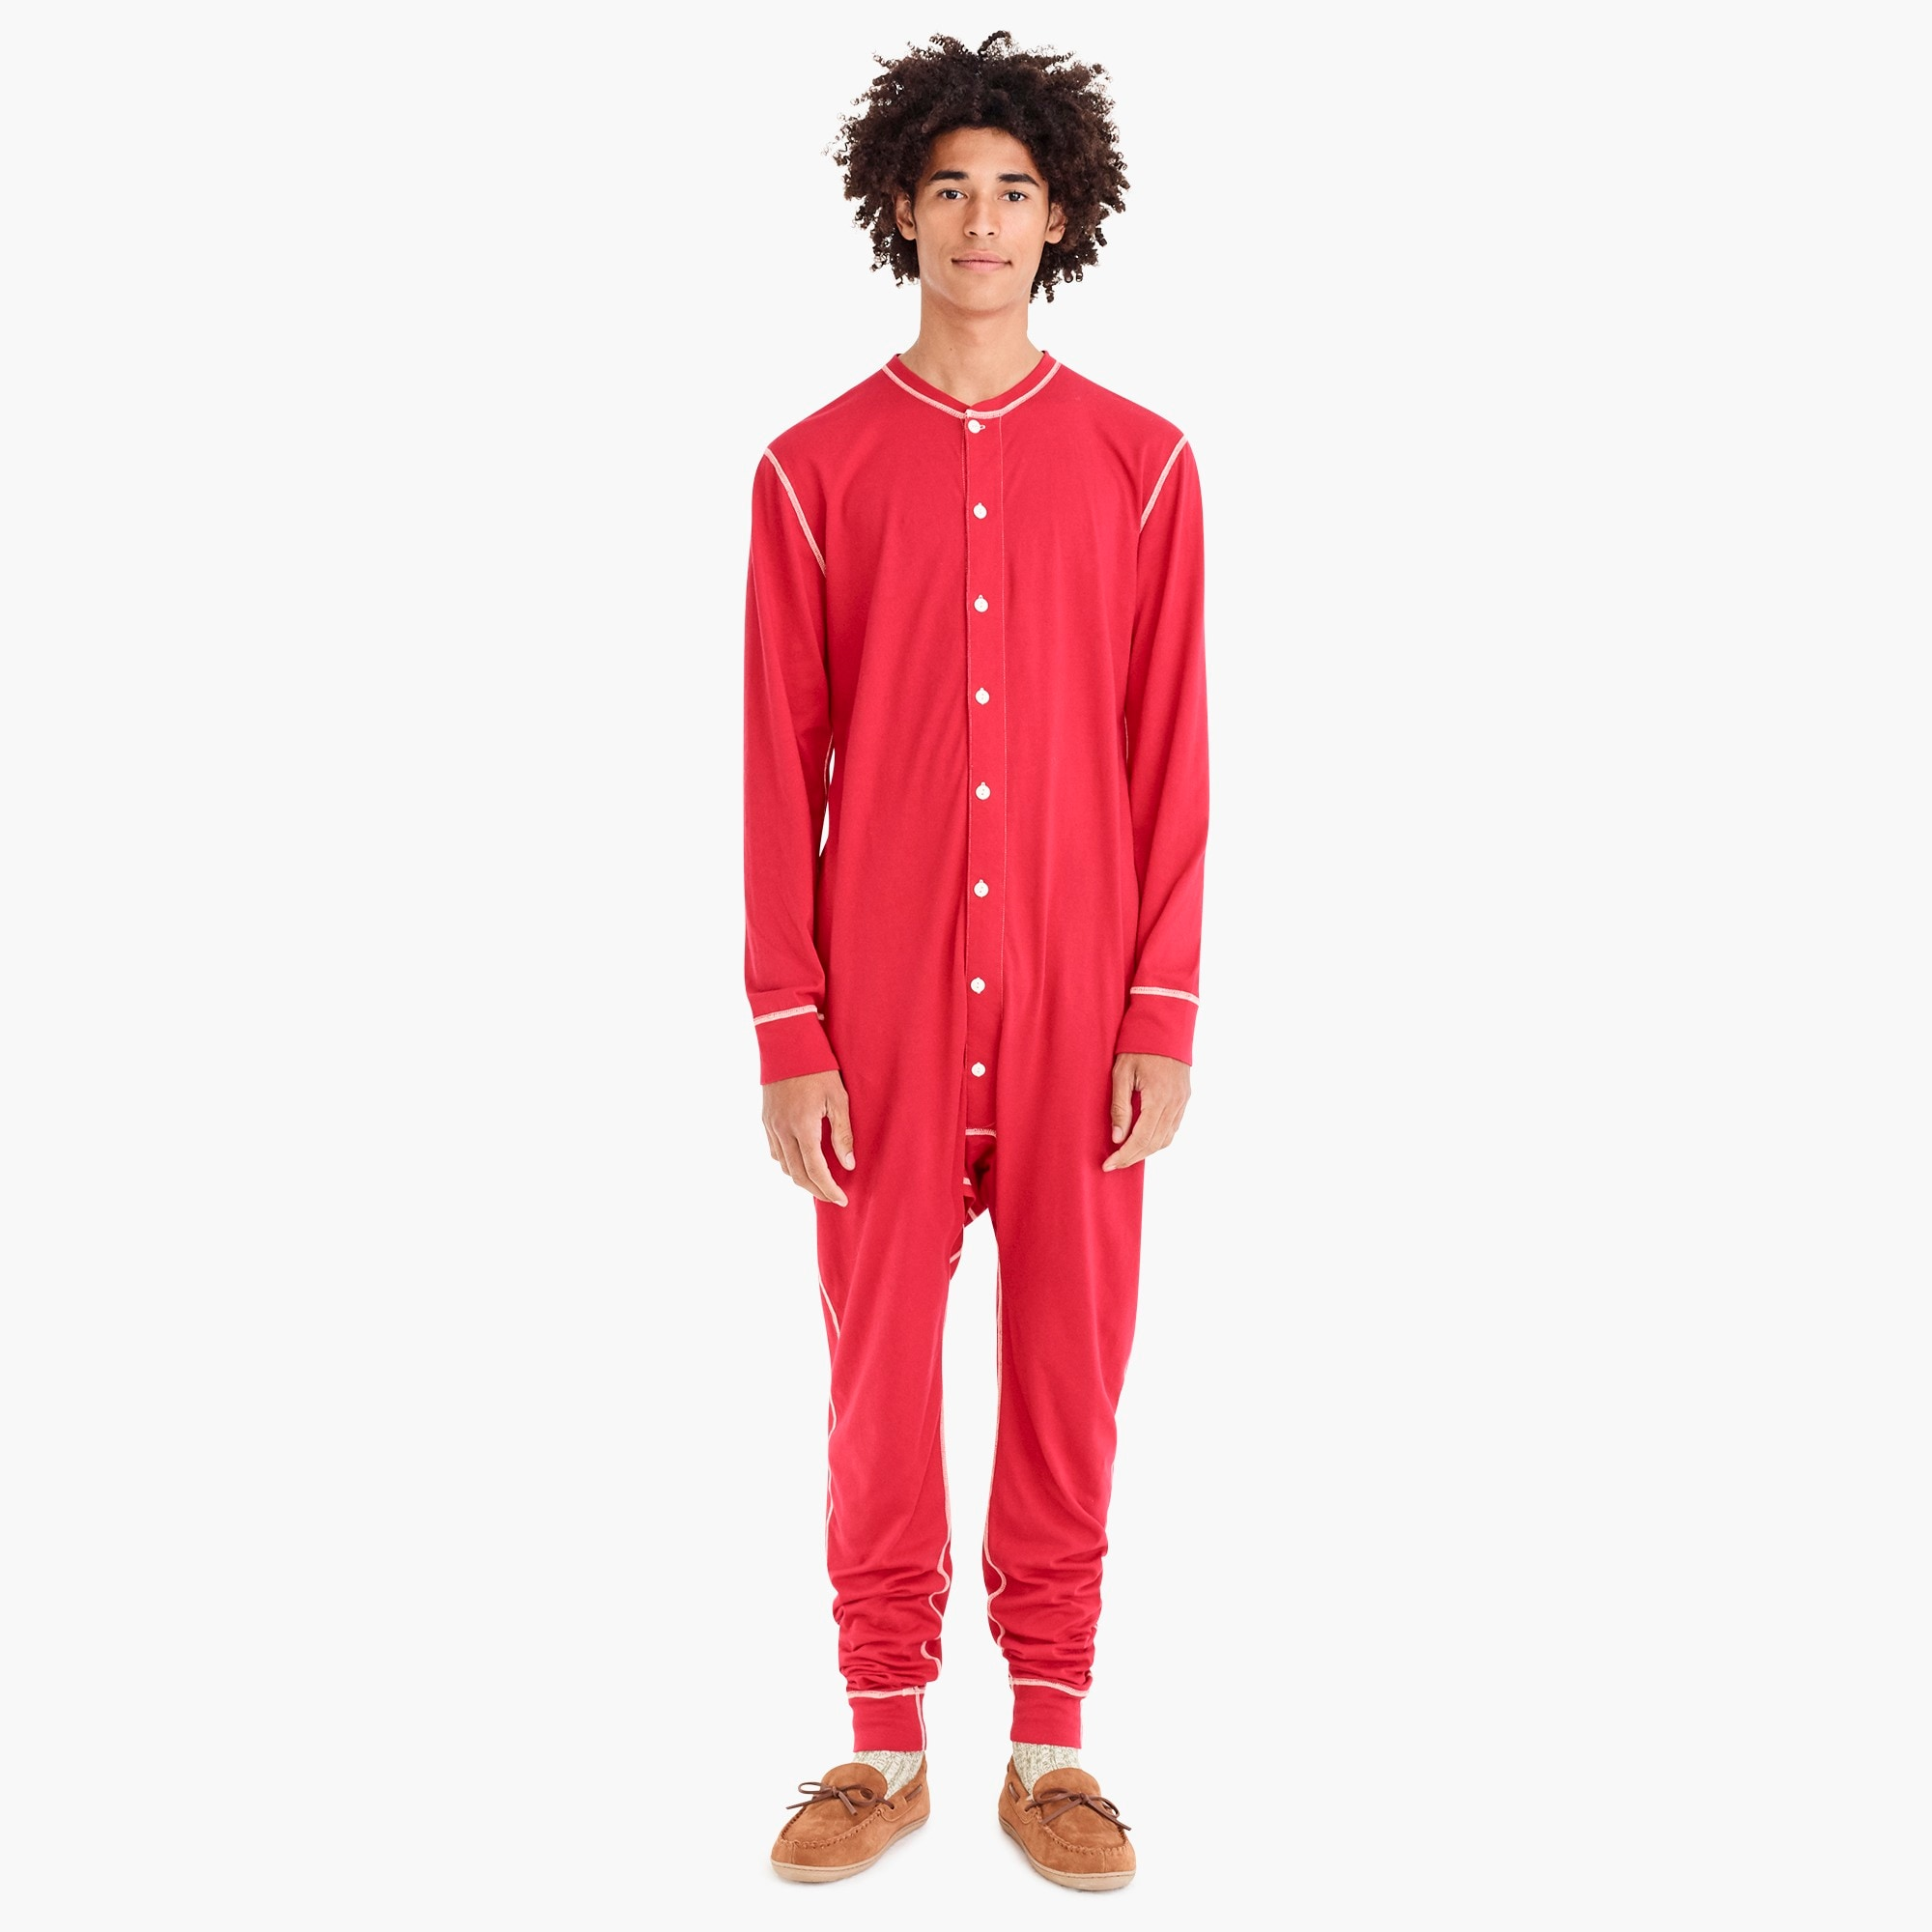 Union suit in red